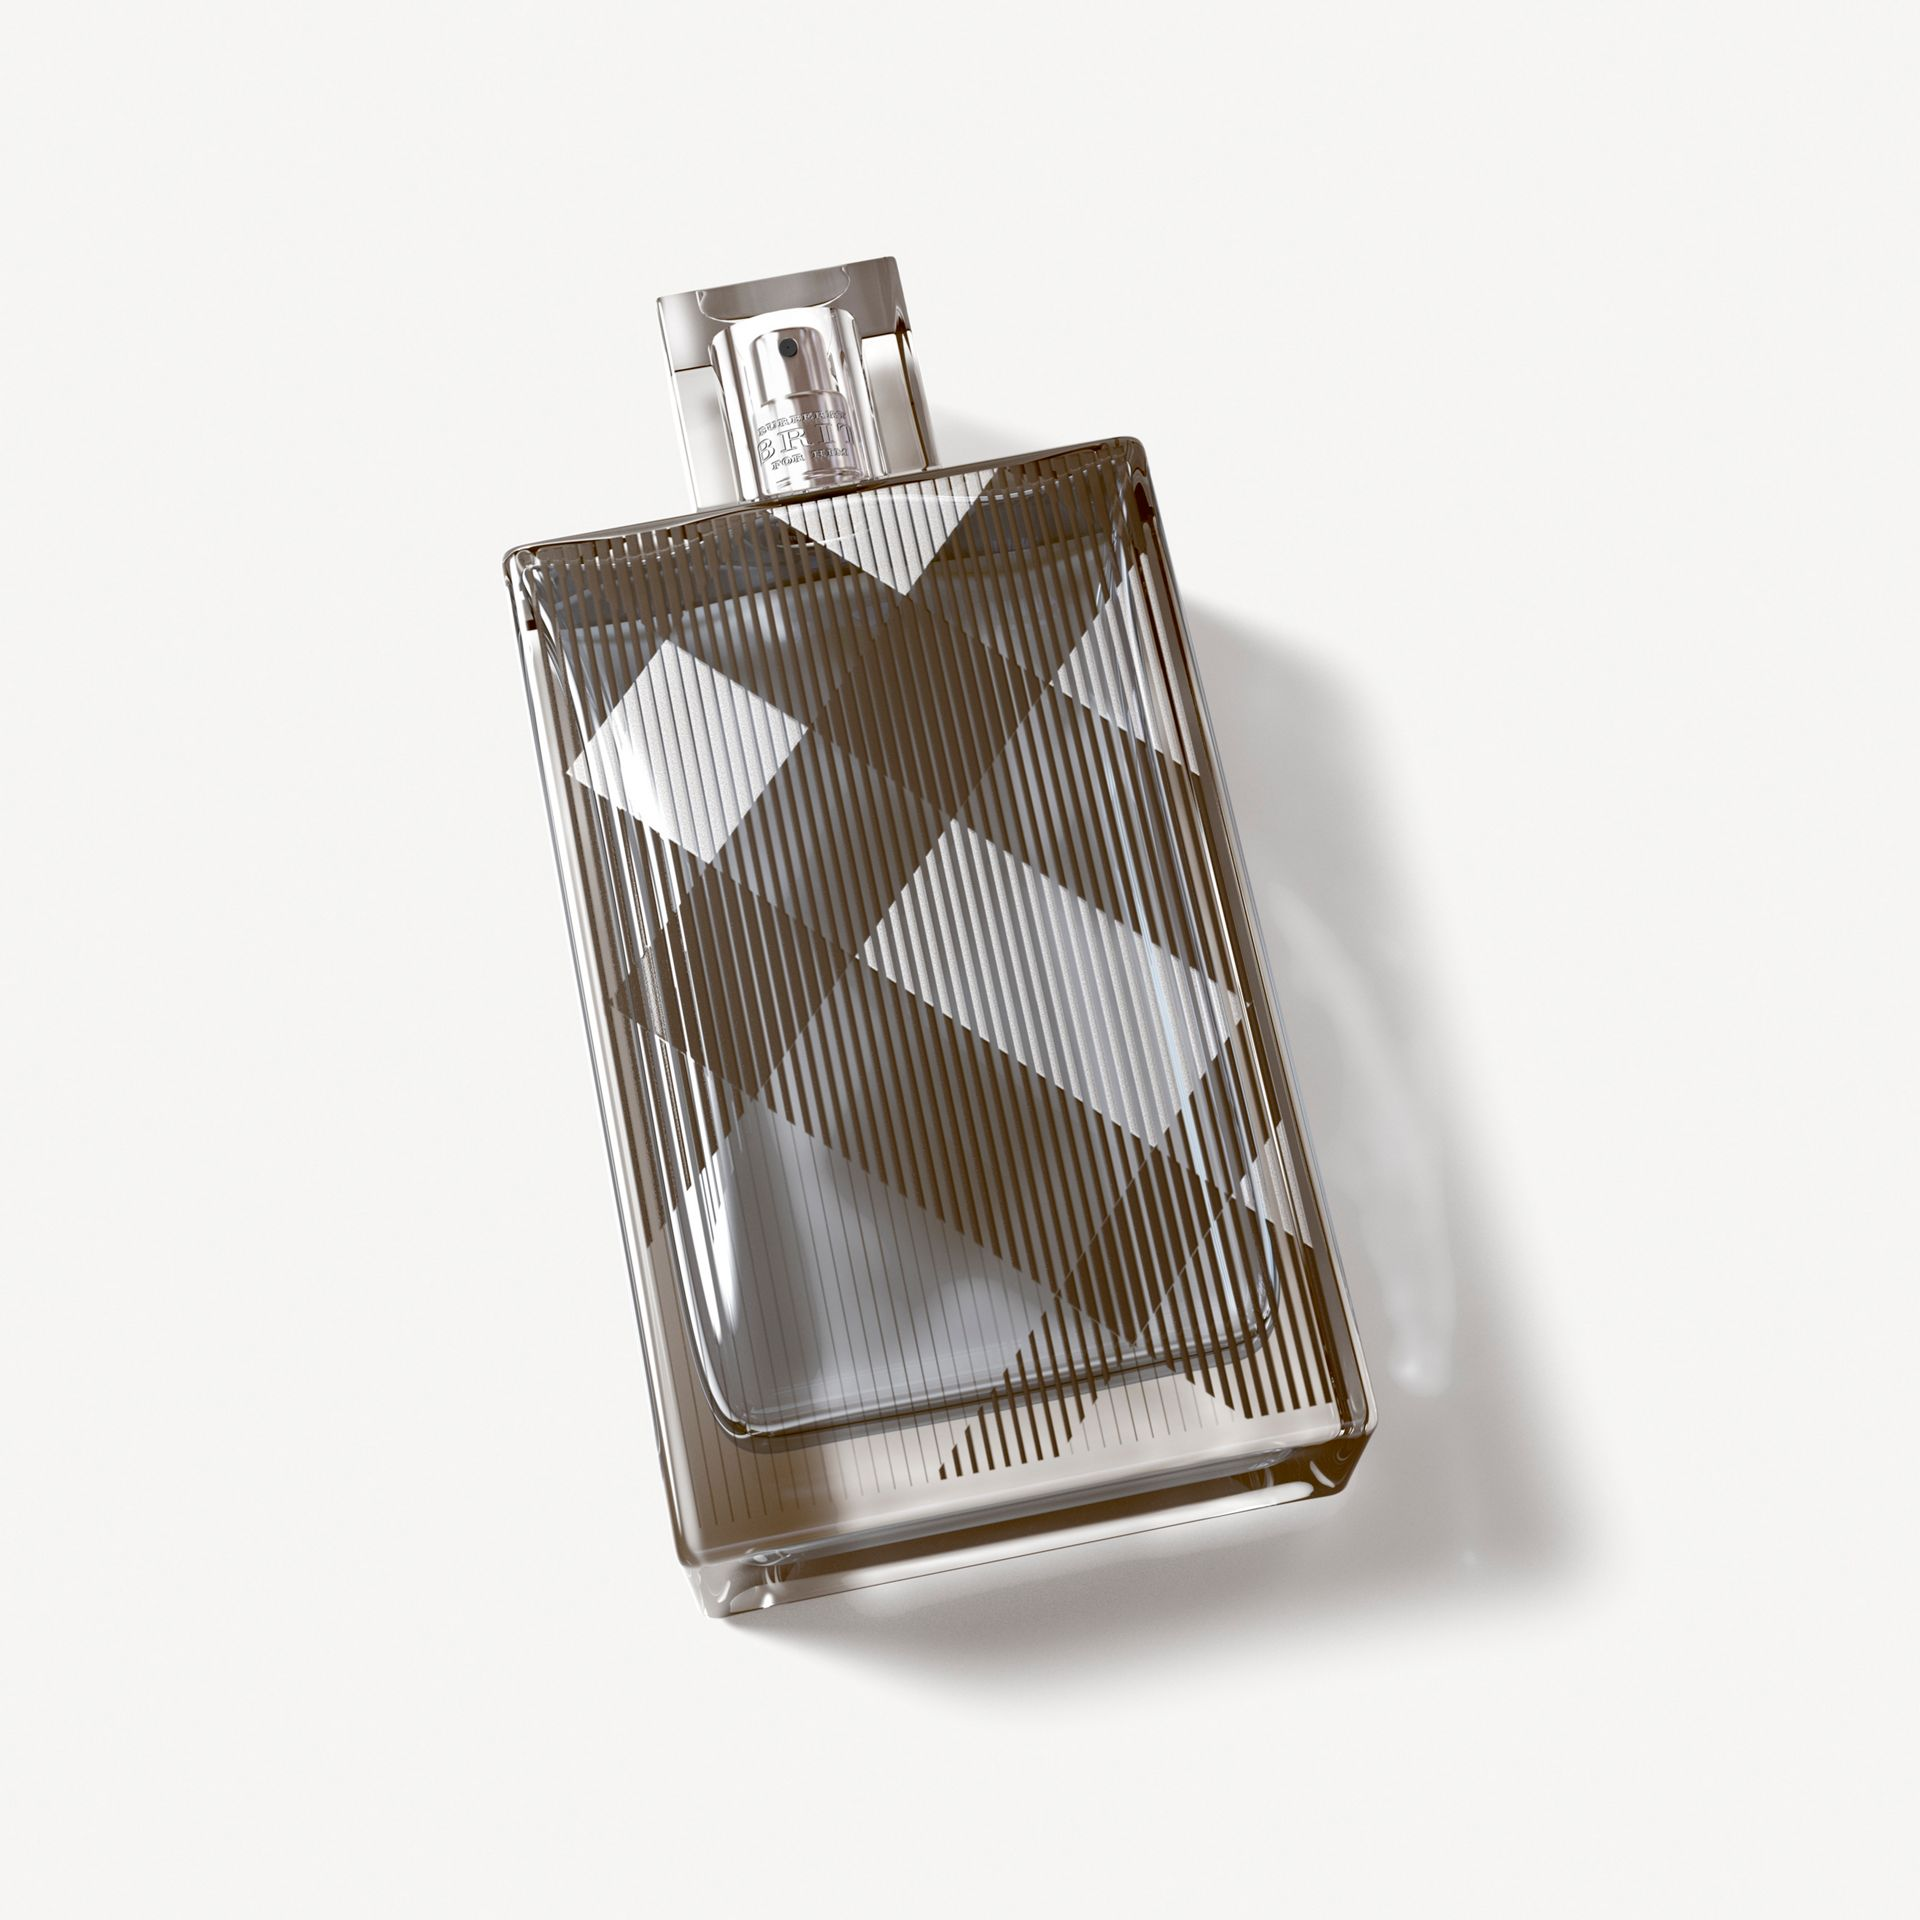 Burberry Brit For Him Eau de Toilette 200 ml - Galerie-Bild 1